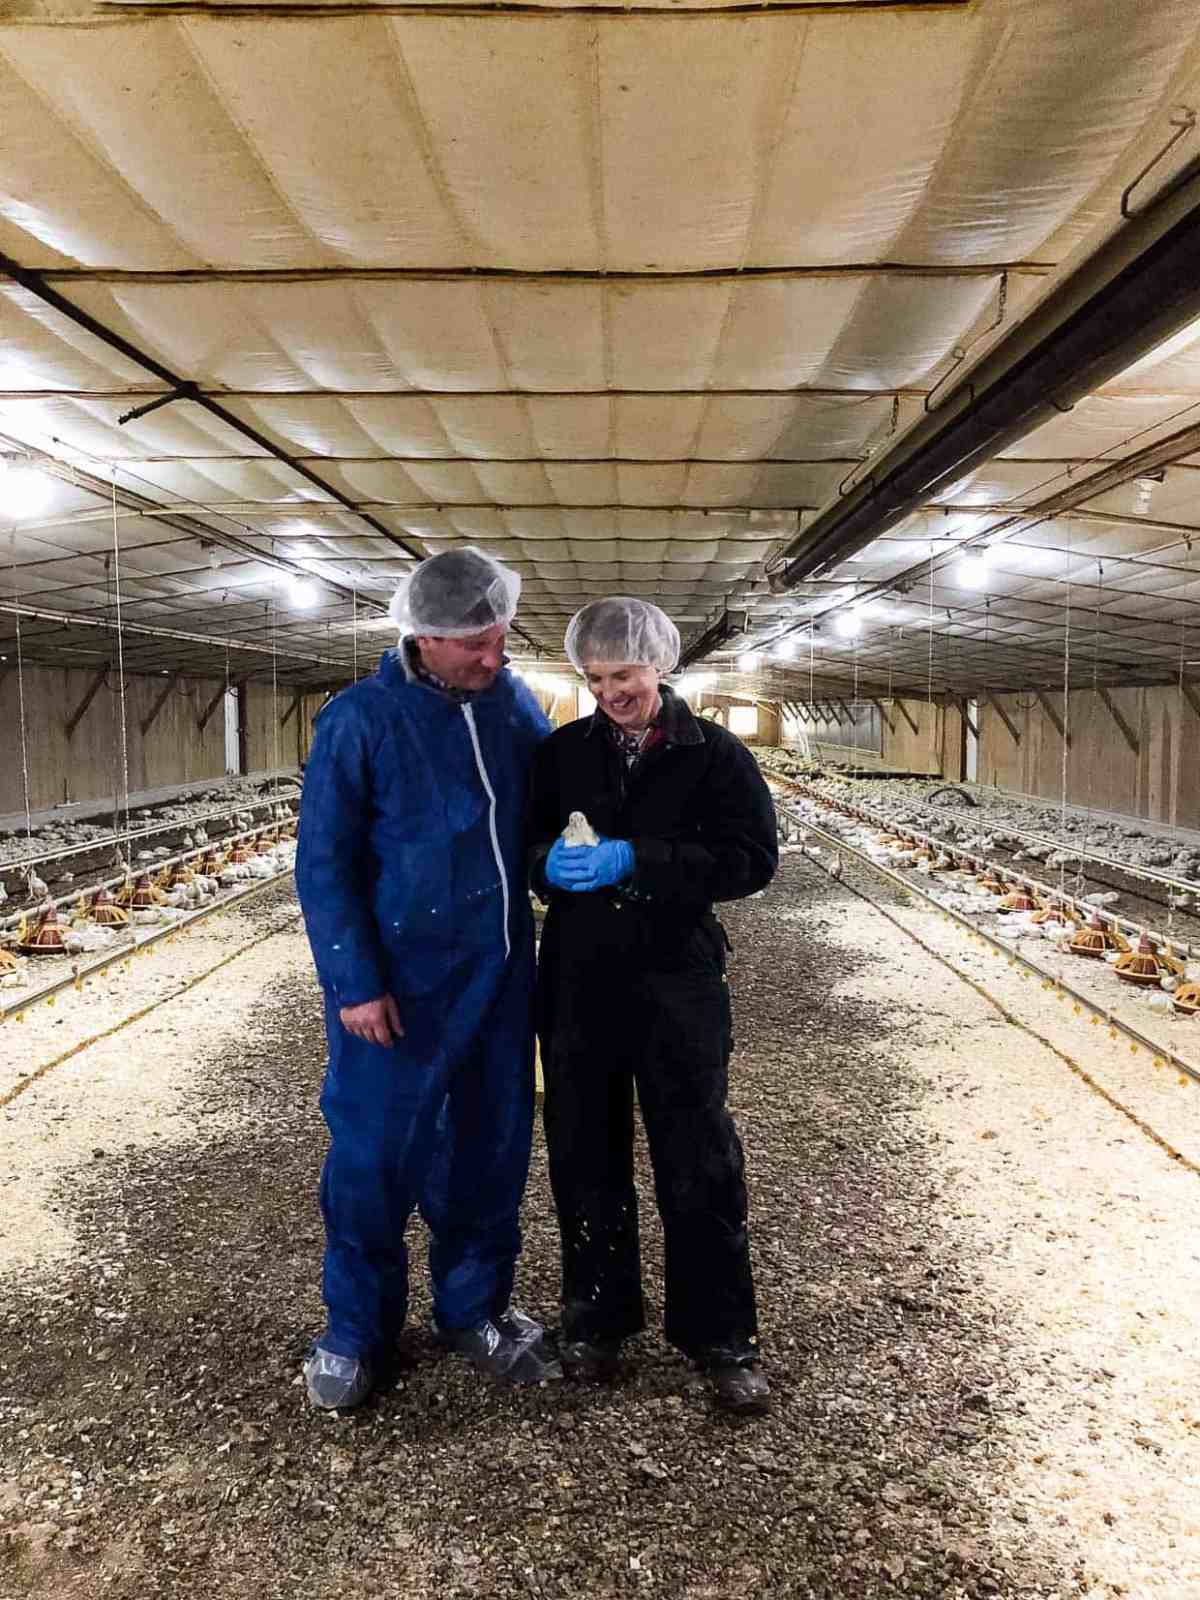 Chicken Check In and how broiler chickens are raised - learn the truth behind chicken farming. #sponsored by the National Chicken Council